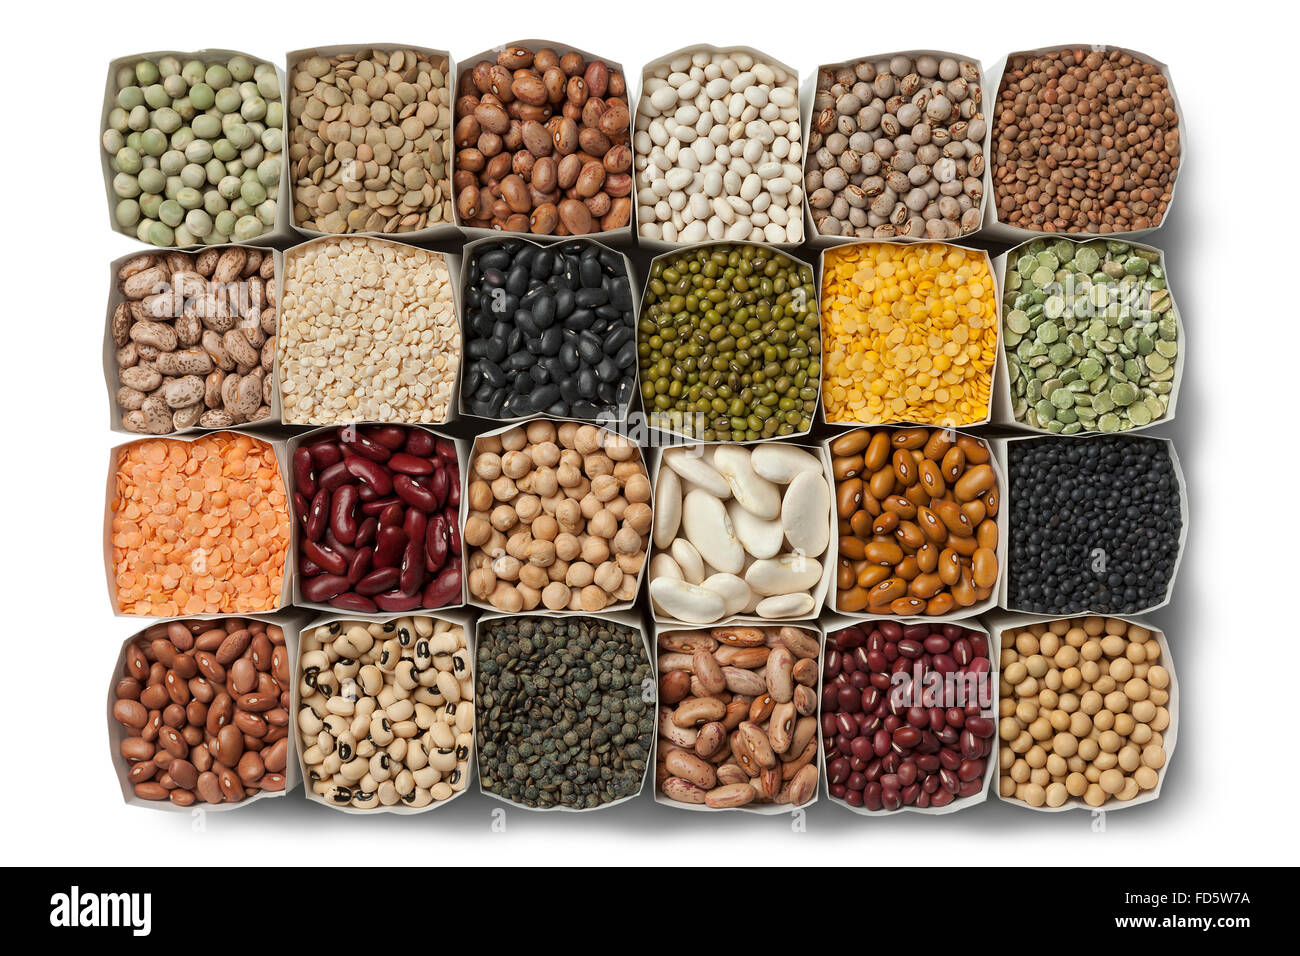 Variety of dried beans and lentils in bags on white background - Stock Image